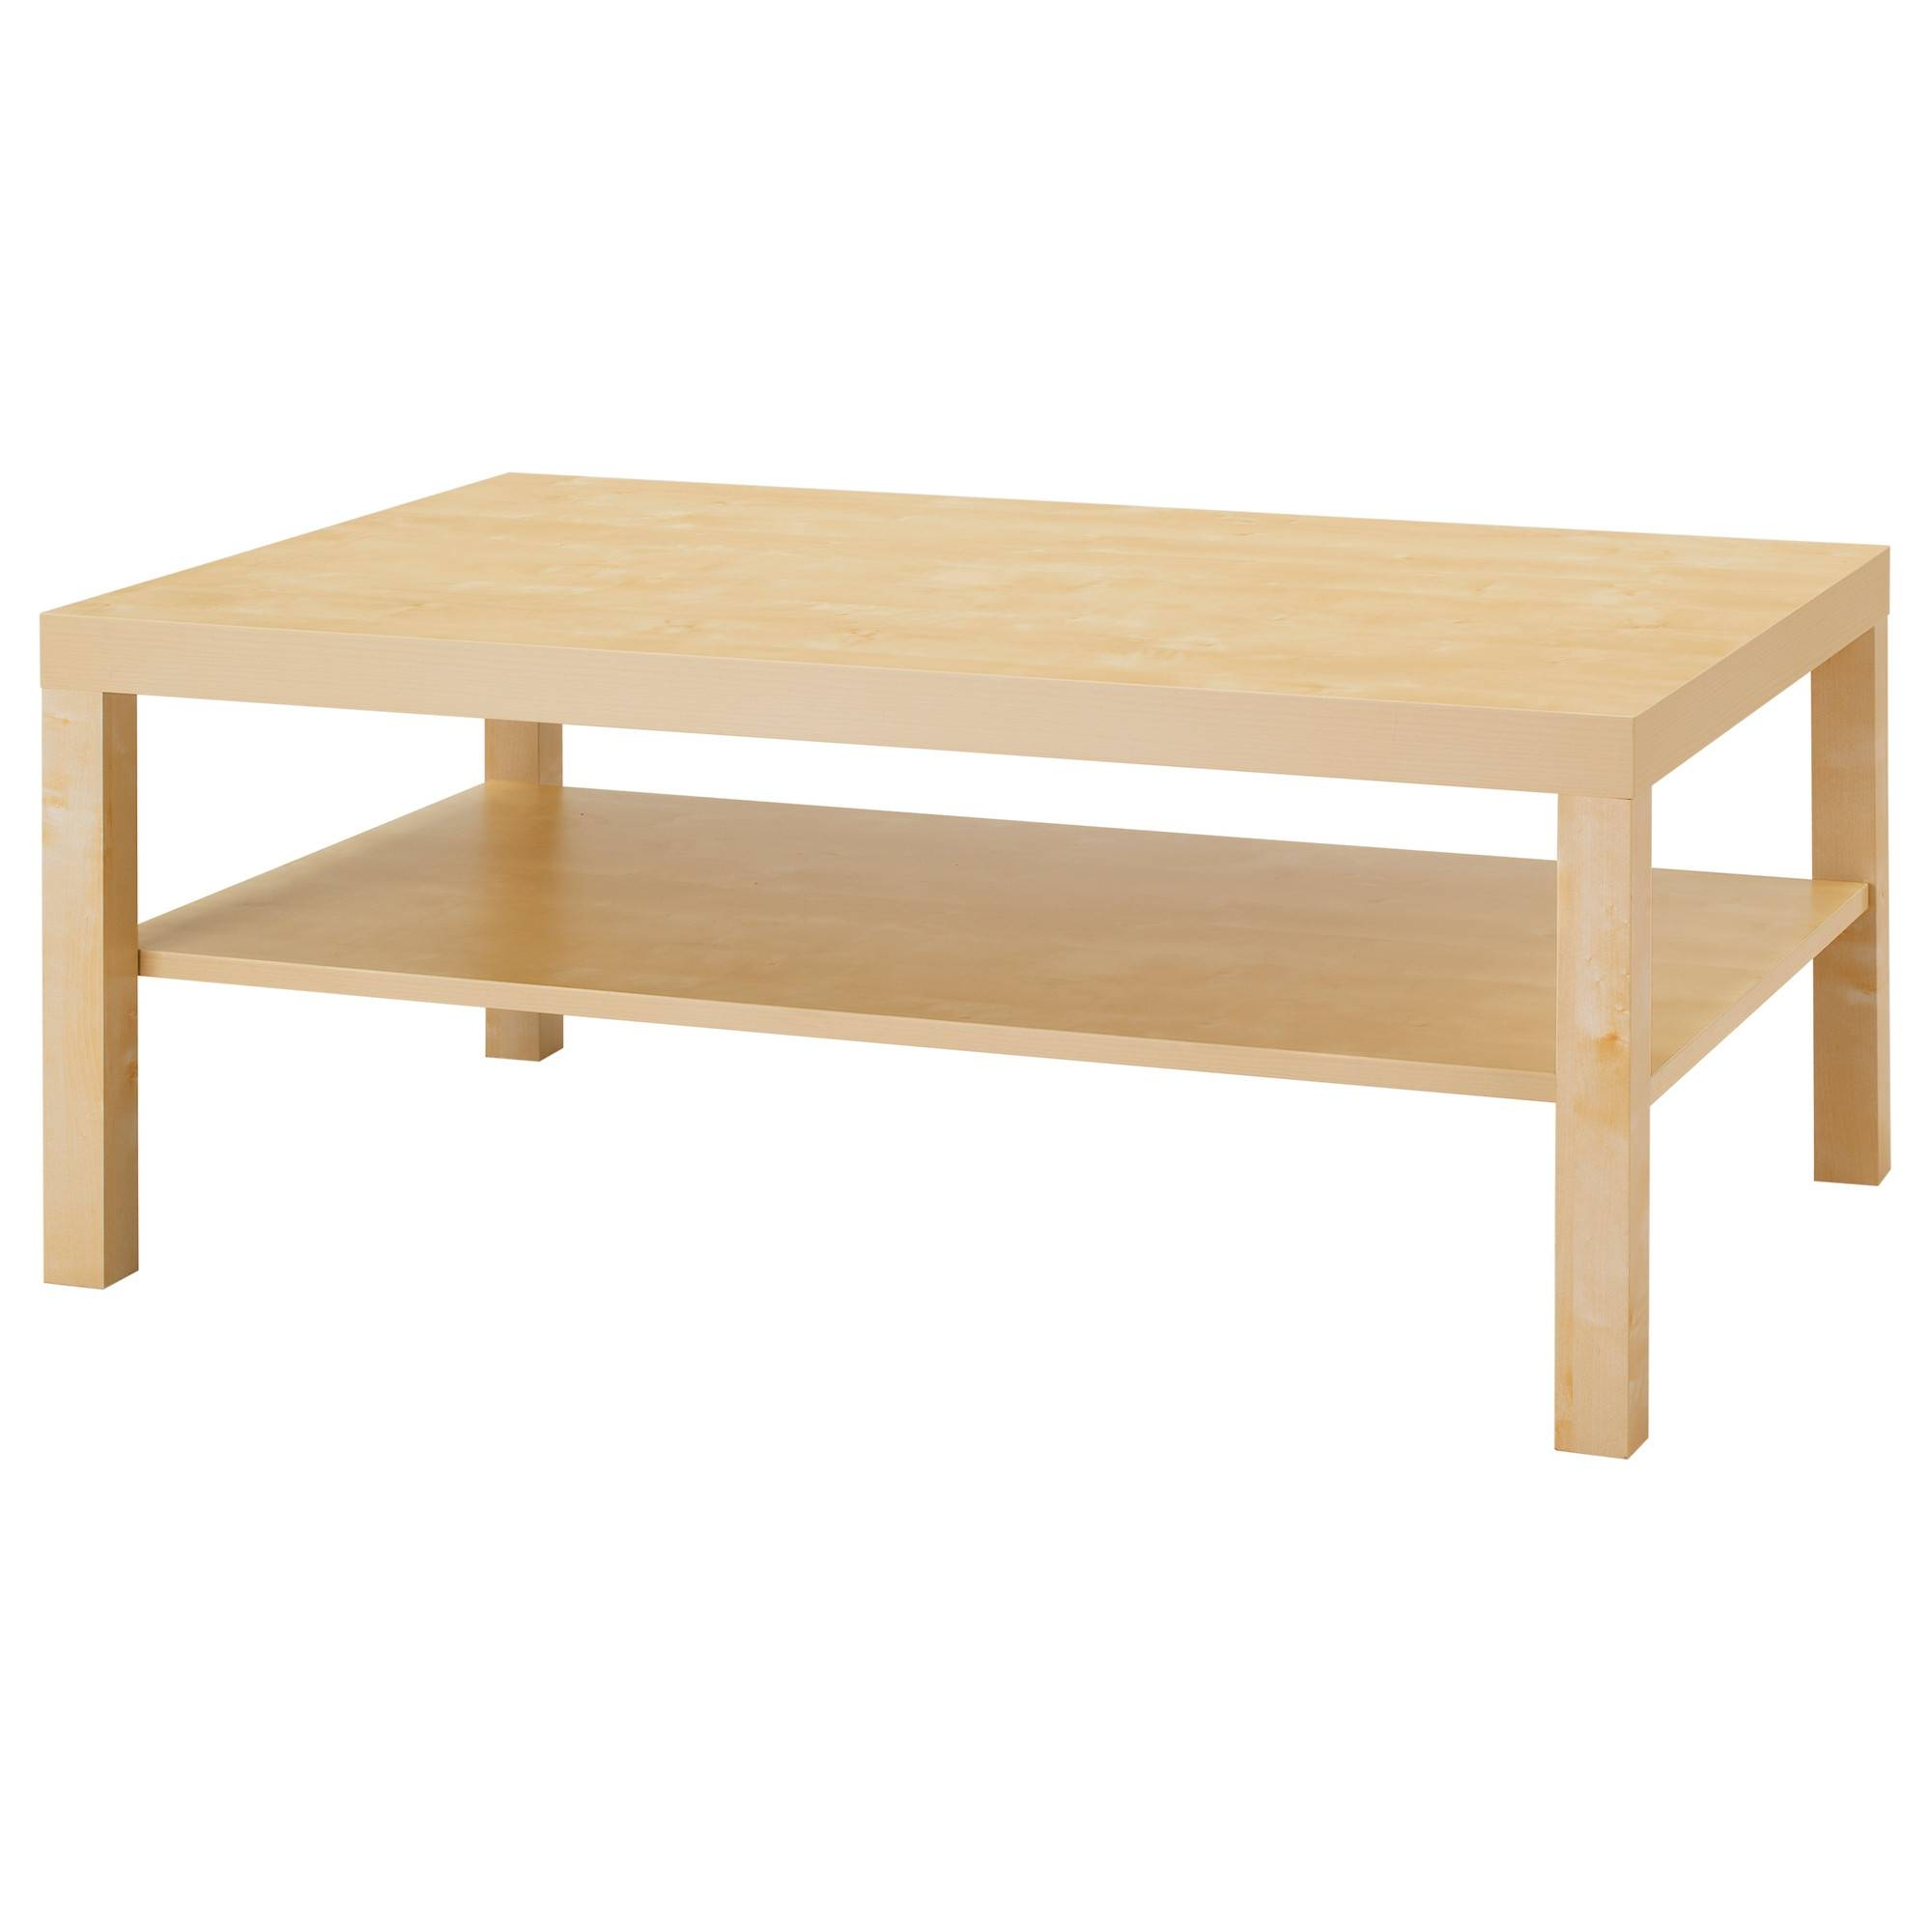 Lack Coffee Table - White - Ikea regarding Desk Coffee Tables (Image 12 of 30)